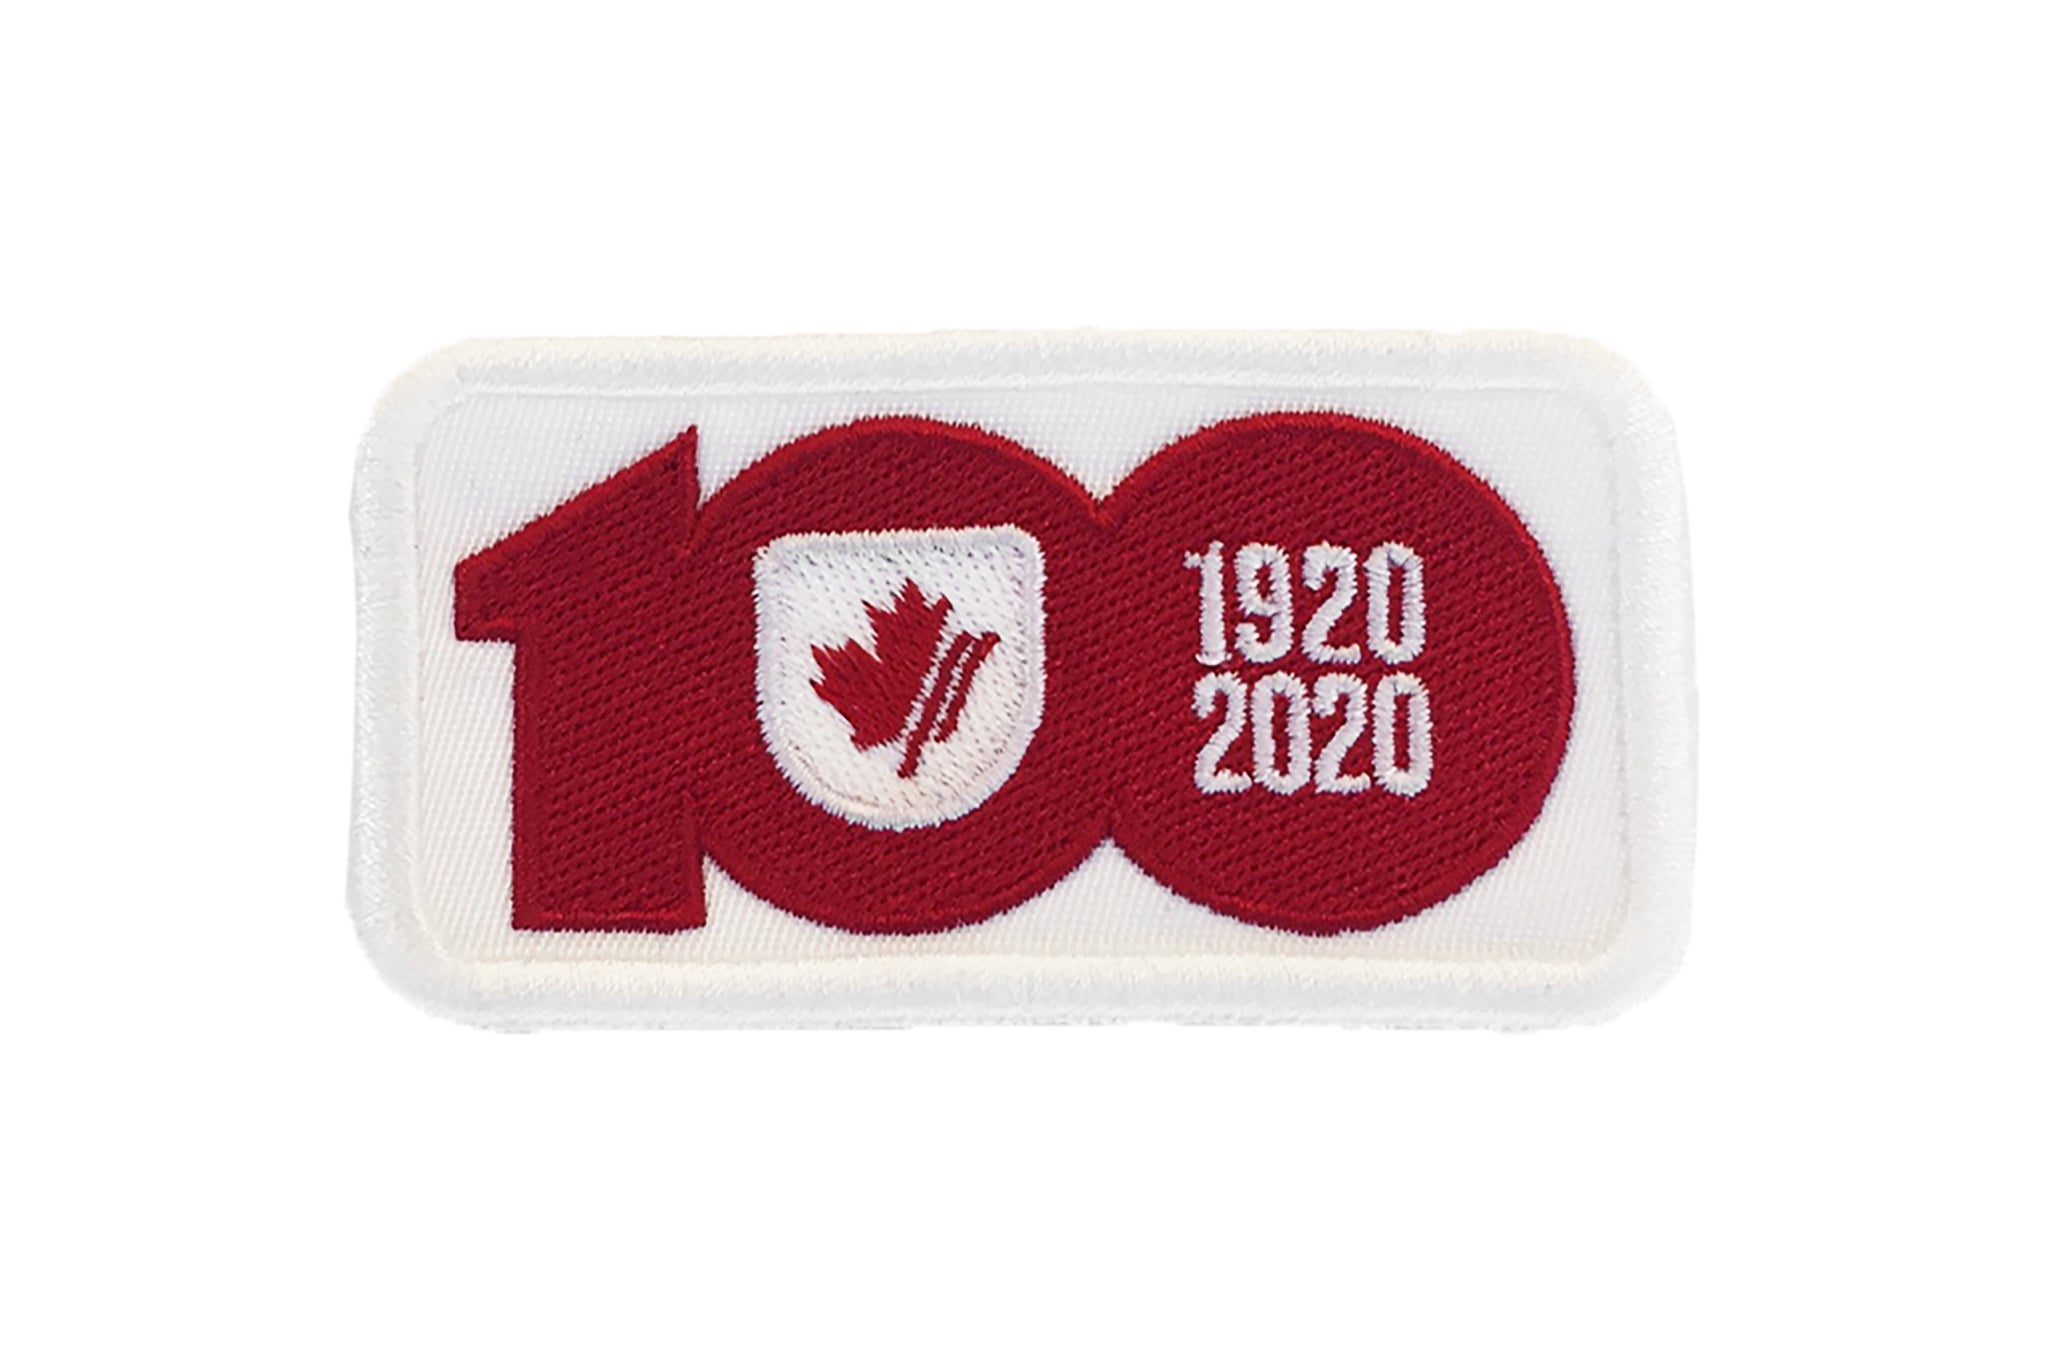 ACA 100th Year Anniversary Patch · Écusson 100e anniversaire d'ACA